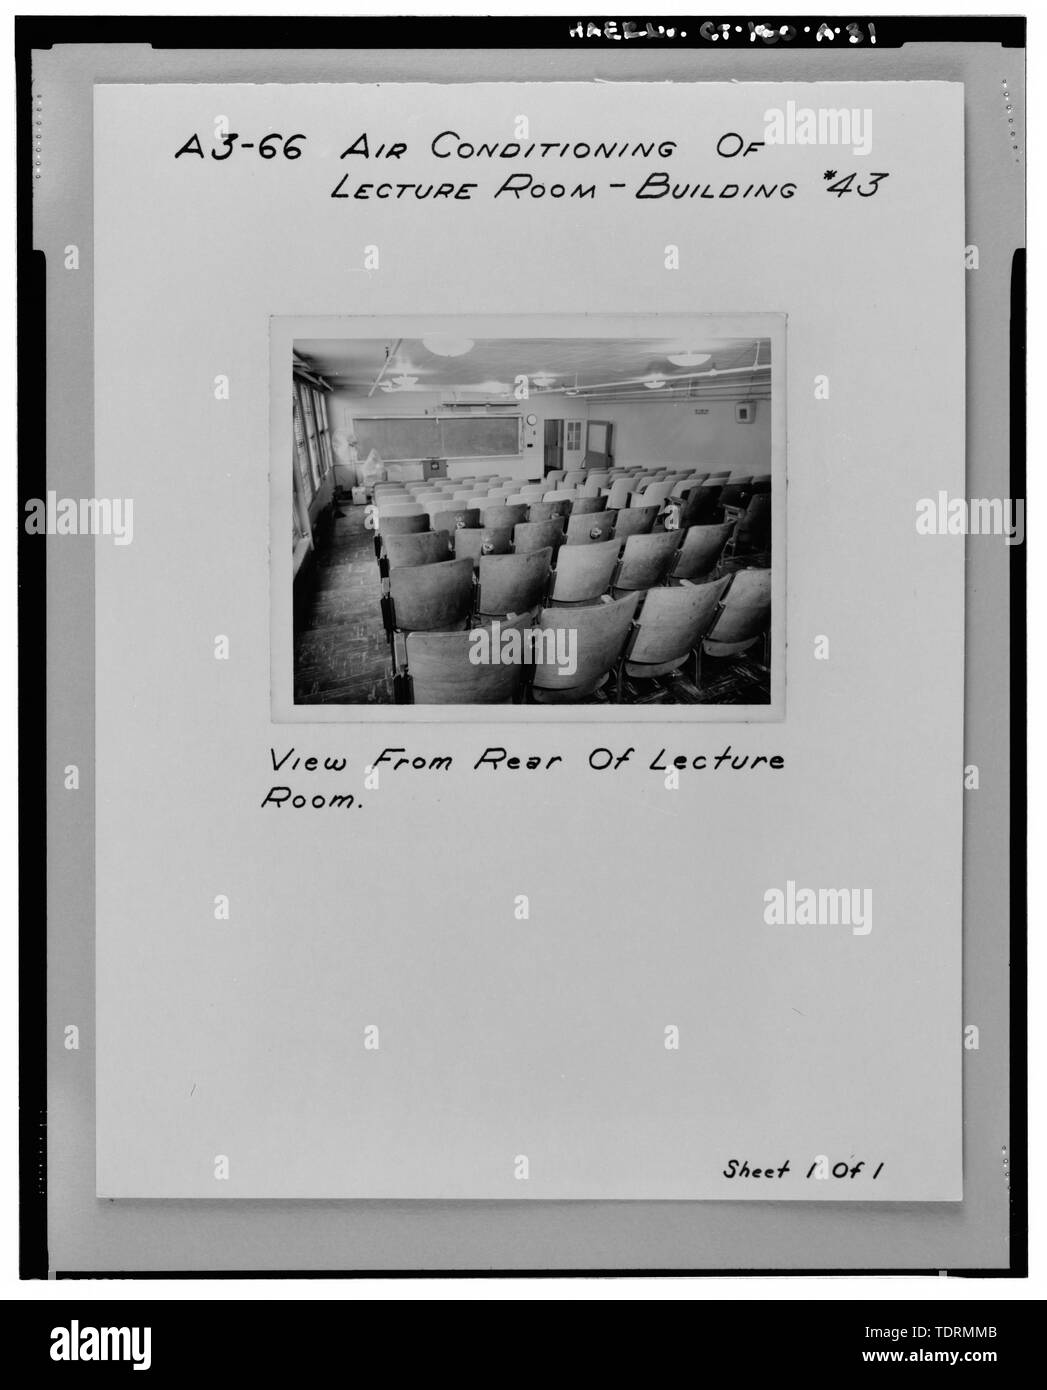 Photographic copy of historic views of lecture room, first floor, Bowditch Hall, c. 1955, taken from album in building photo files in Caretaker Site Office, Naval Undersea Warfare Center, New London. Copyright-free. - Naval Undersea Warfare Center, Bowditch Hall, 600 feet east of Smith Street and 350 feet south of Columbia Cove, West bank of Thames River, New London, New London County, CT - Stock Image